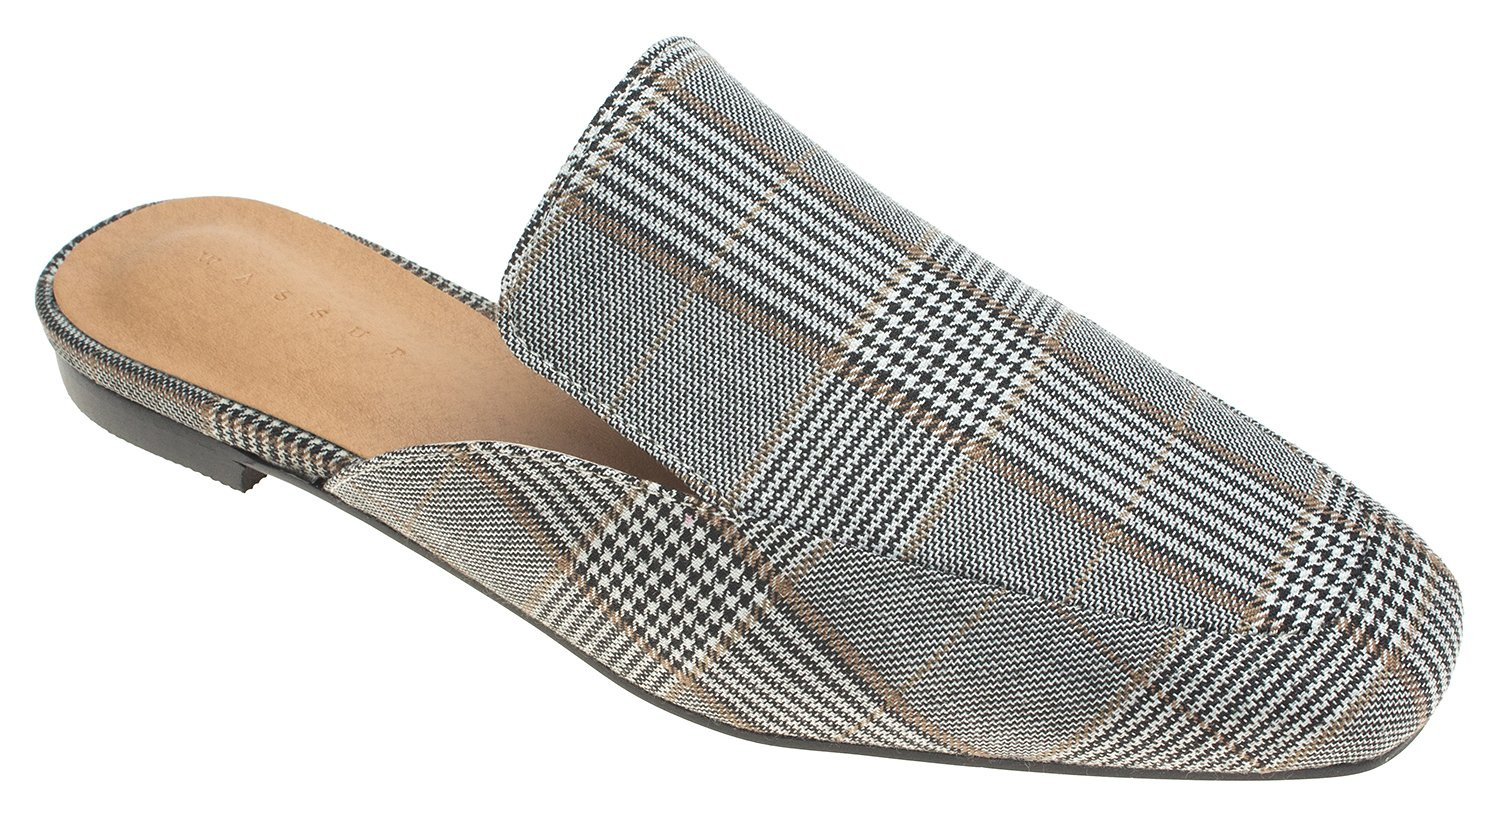 AnnaKastle Womens Plaid Backless Loafer Slipper Shoes Flat Mule (US 7.5, No Fur Gray Plaid)